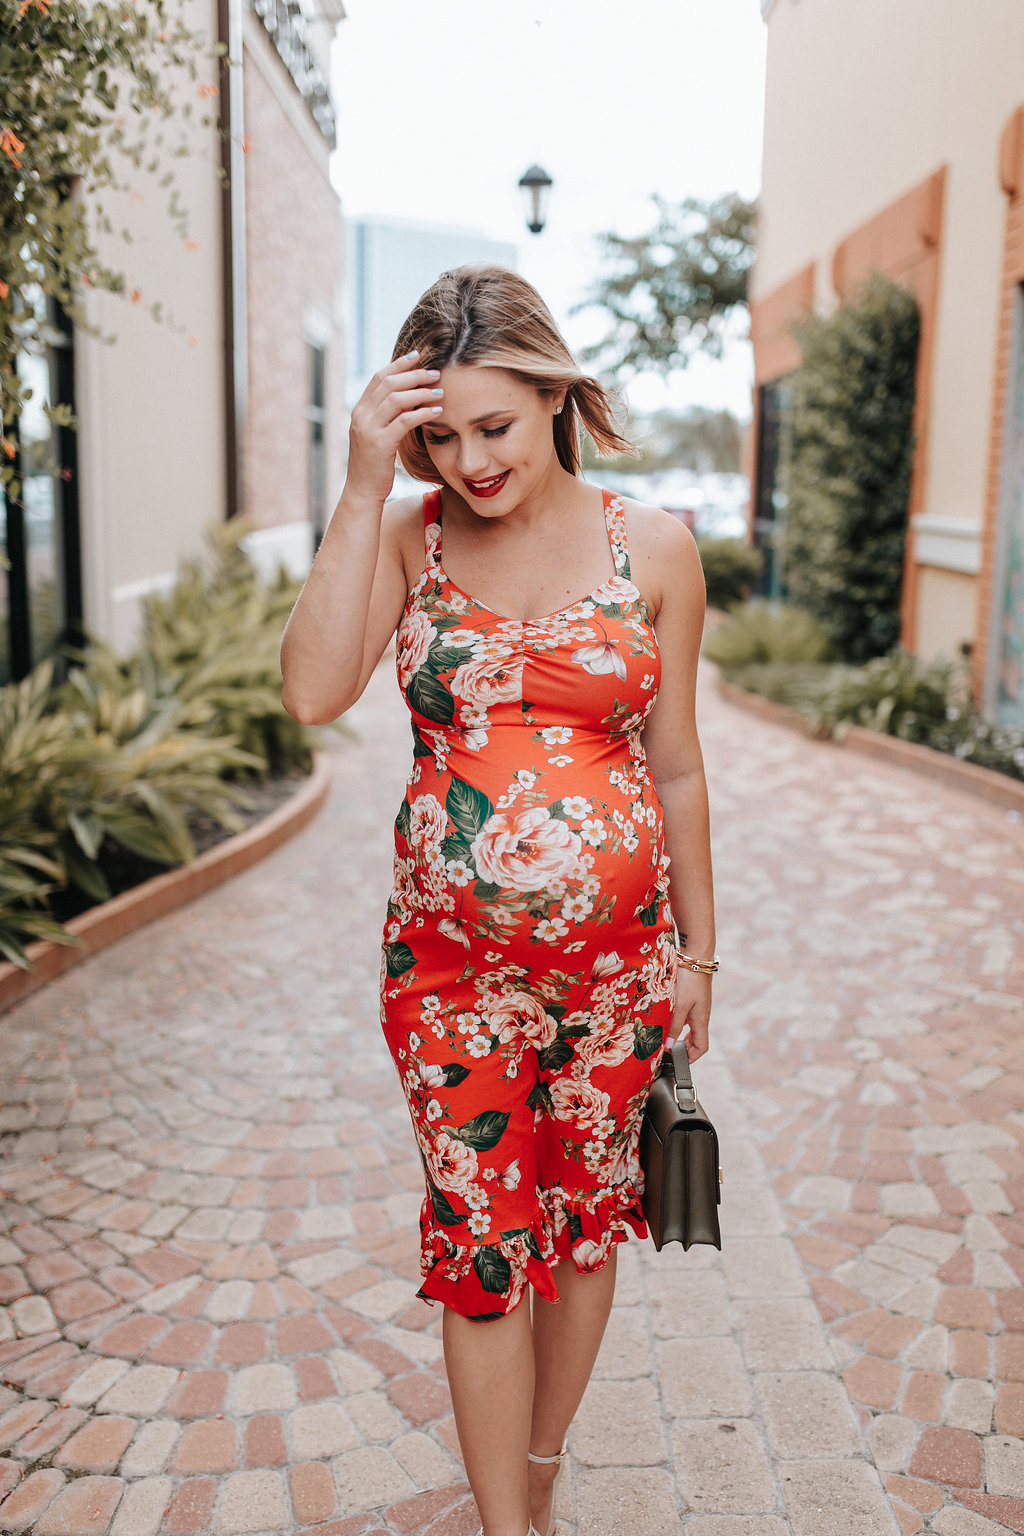 Floral Dress X 36 Weeks Pregnancy Update | Houston Lifestyle blogger Uptown with Elly Brown